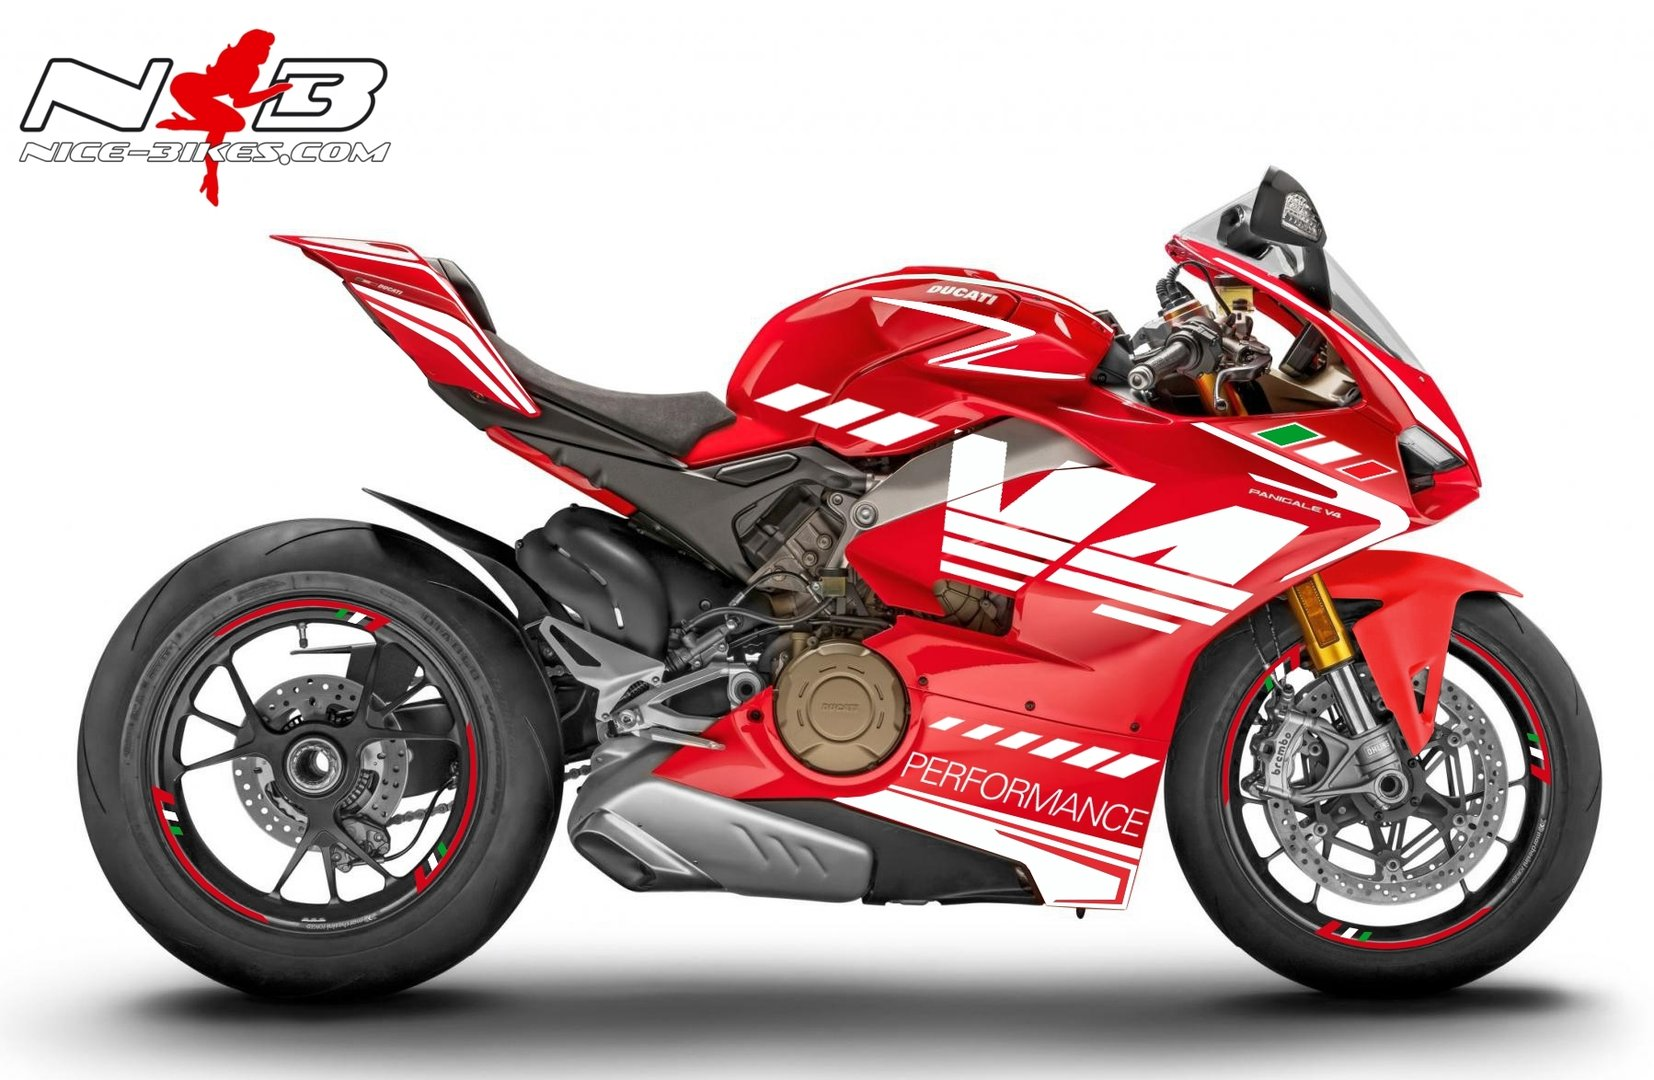 Panigale V4 weiß-tricolor